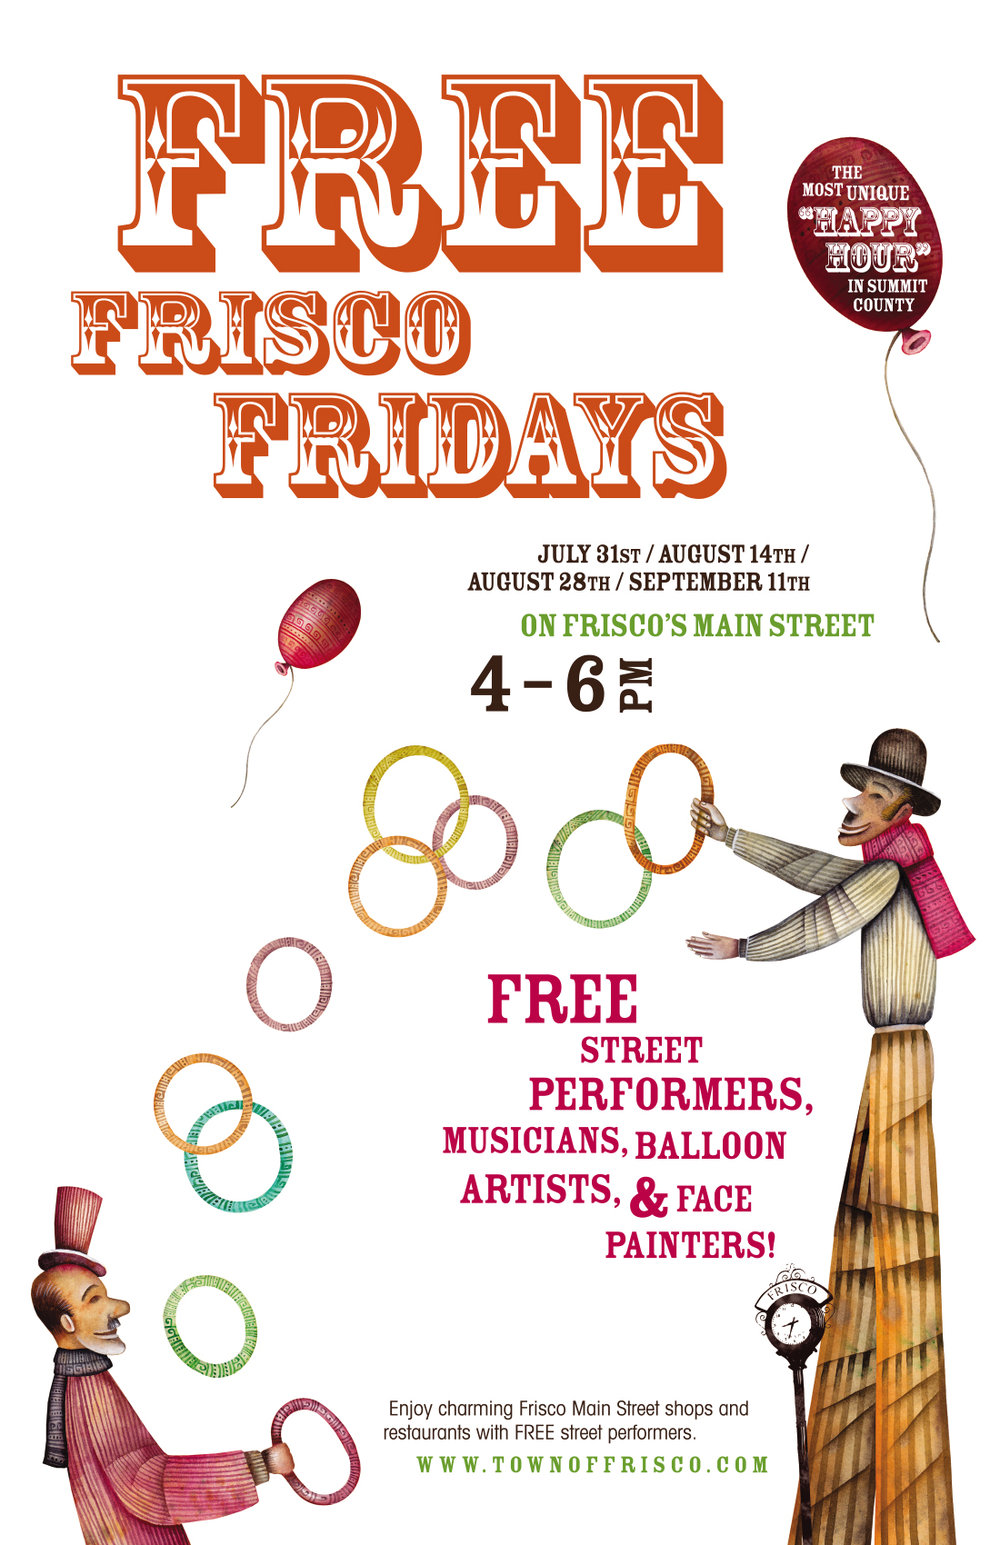 Copy of Free Frisco Fridays